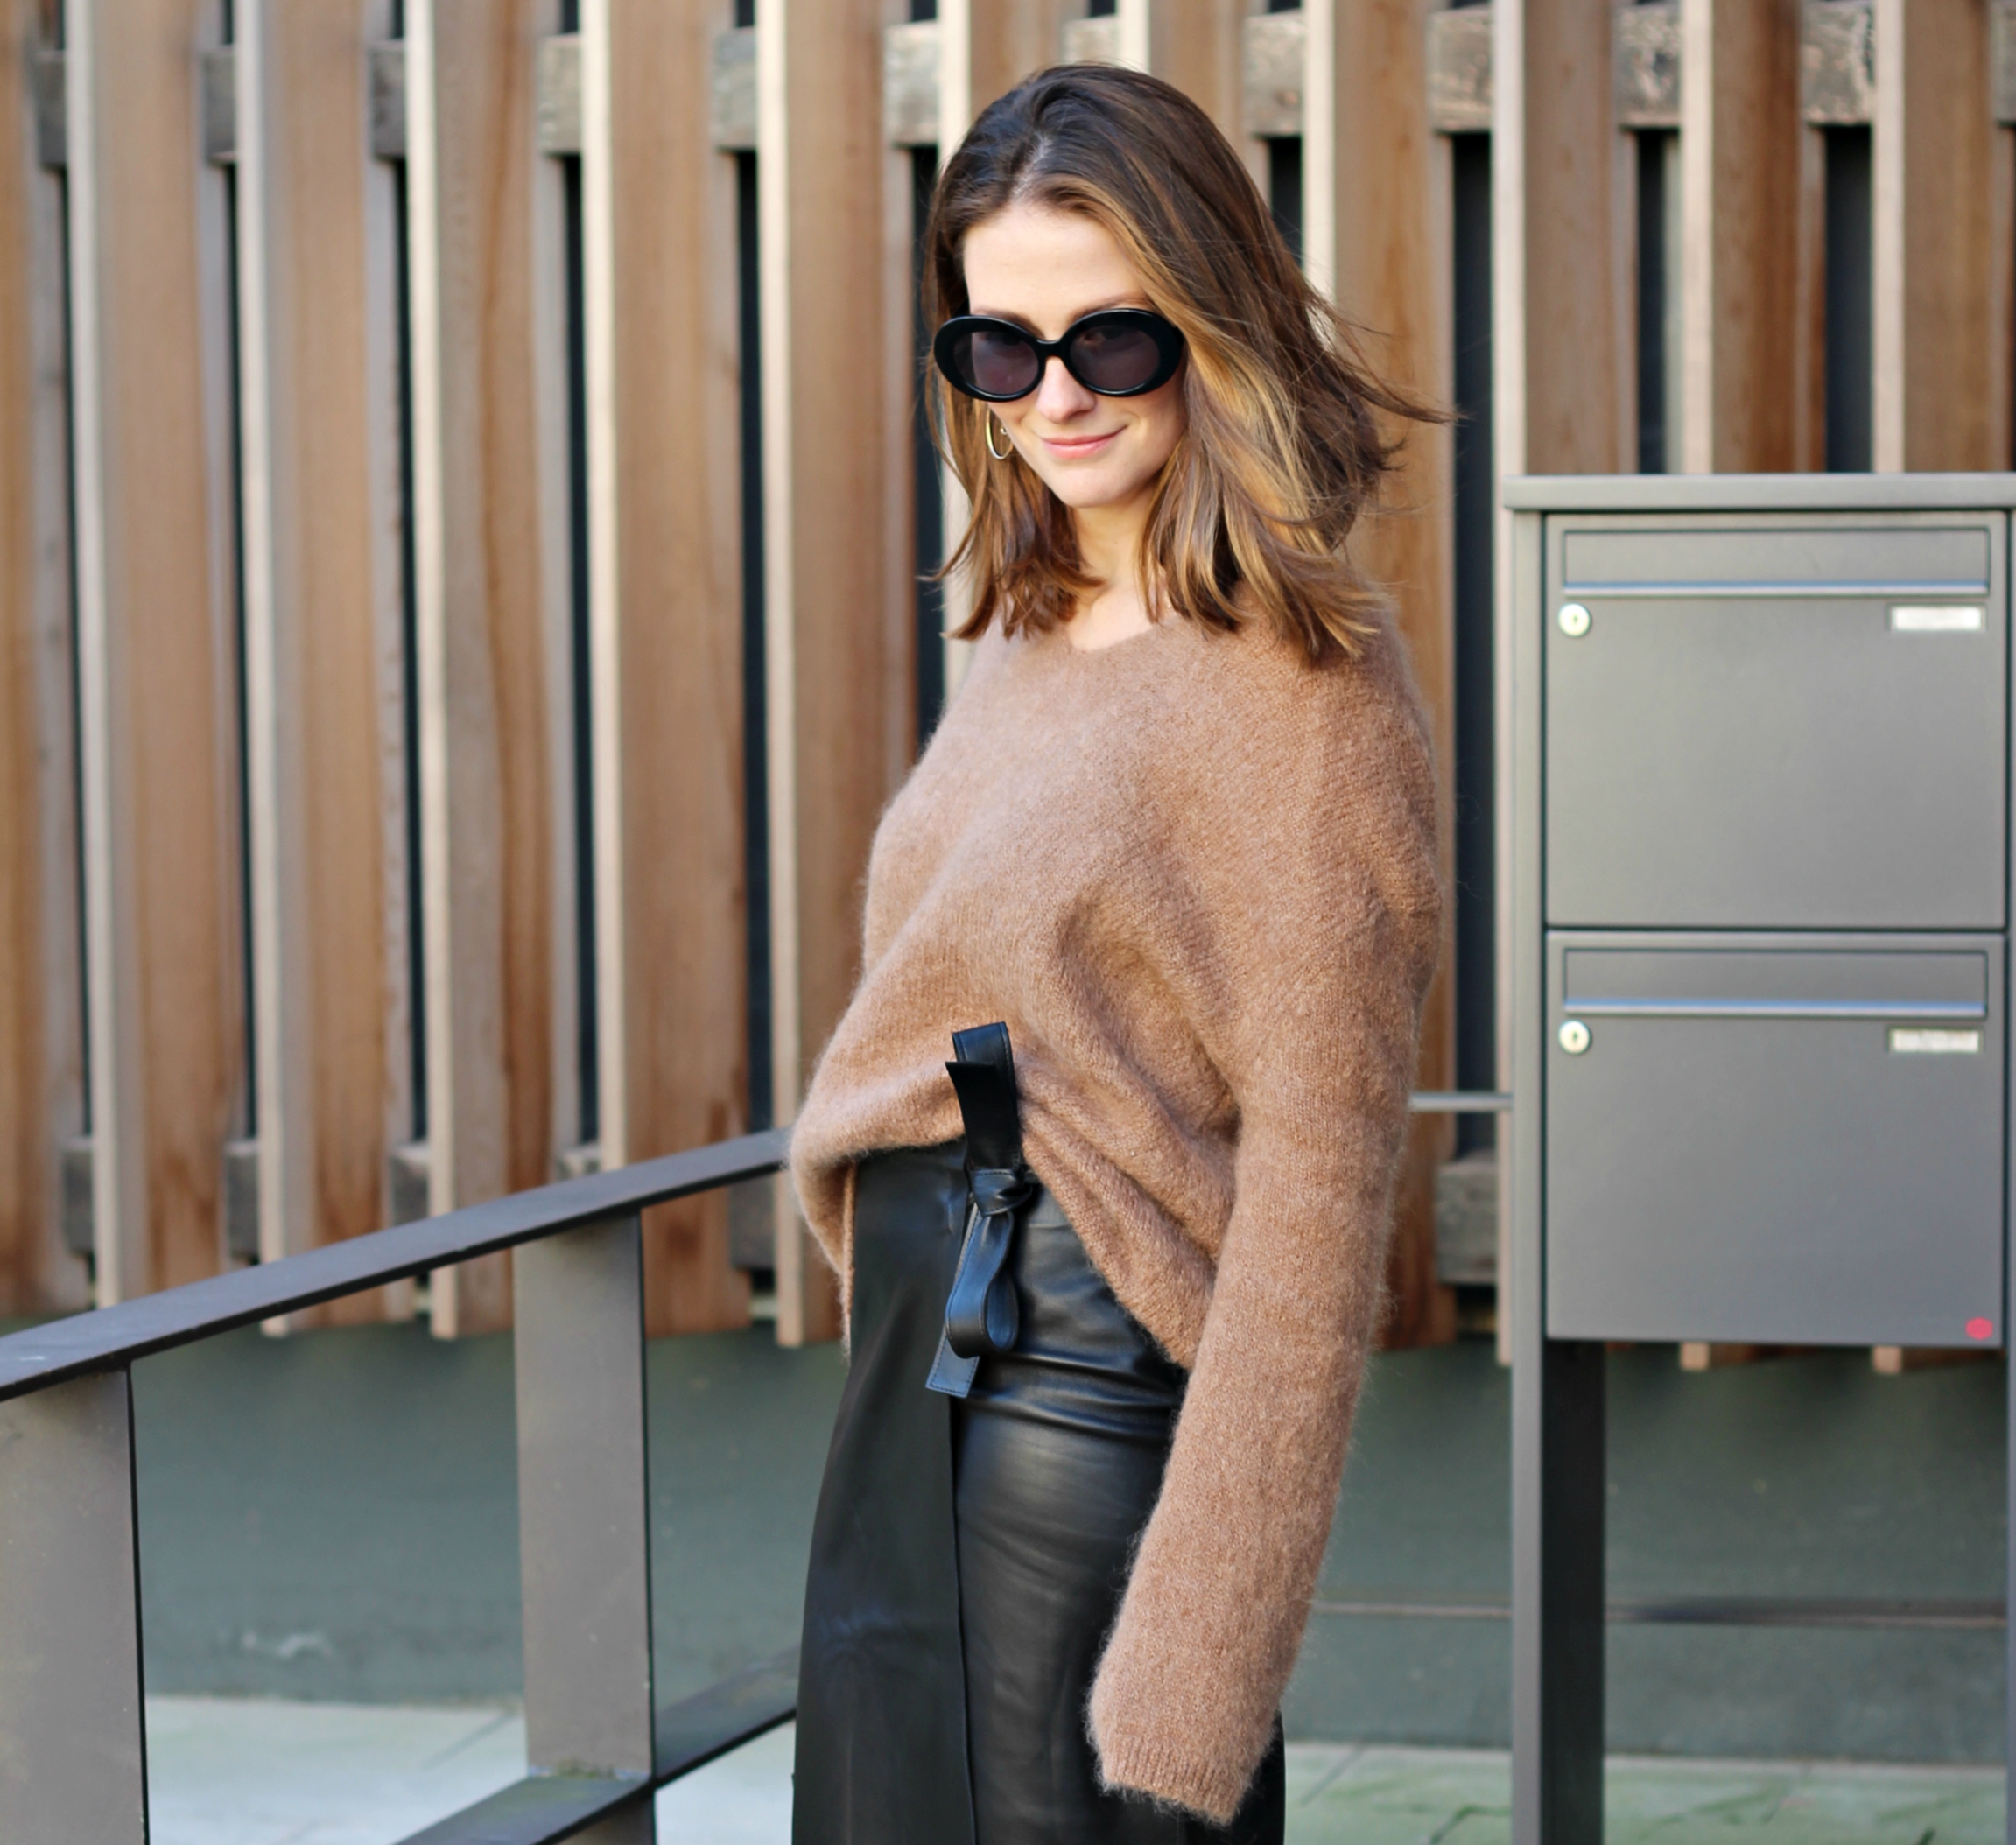 annaporter-camel-sweater-leather-skirt-hm-4-preview-pic.jpg